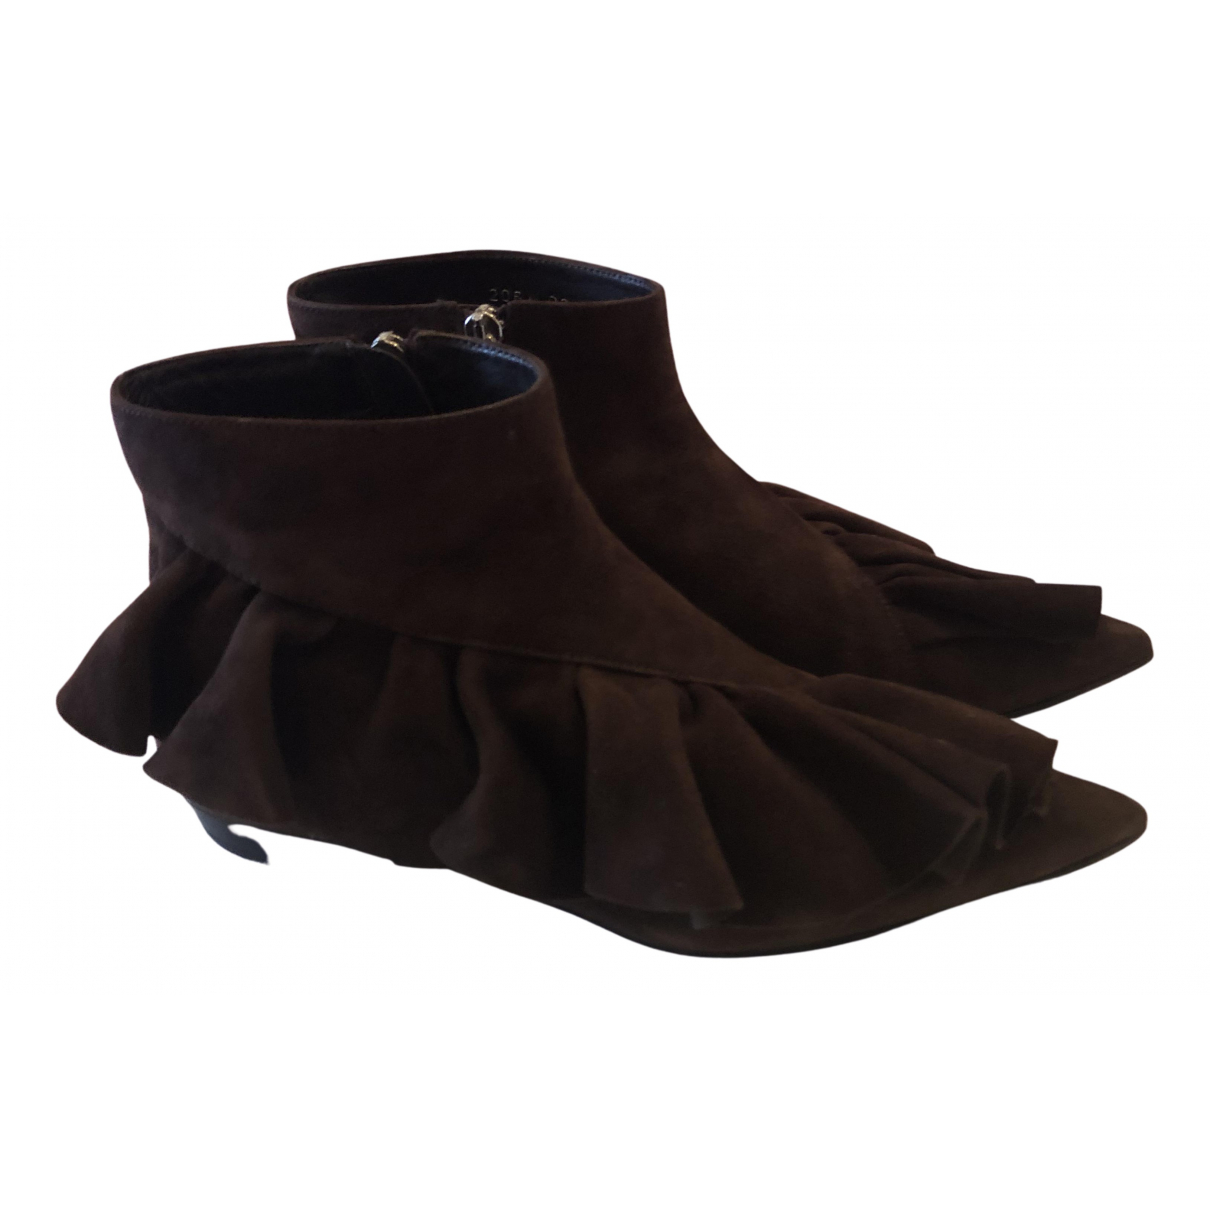 J.w. Anderson N Brown Suede Ankle boots for Women 39 EU